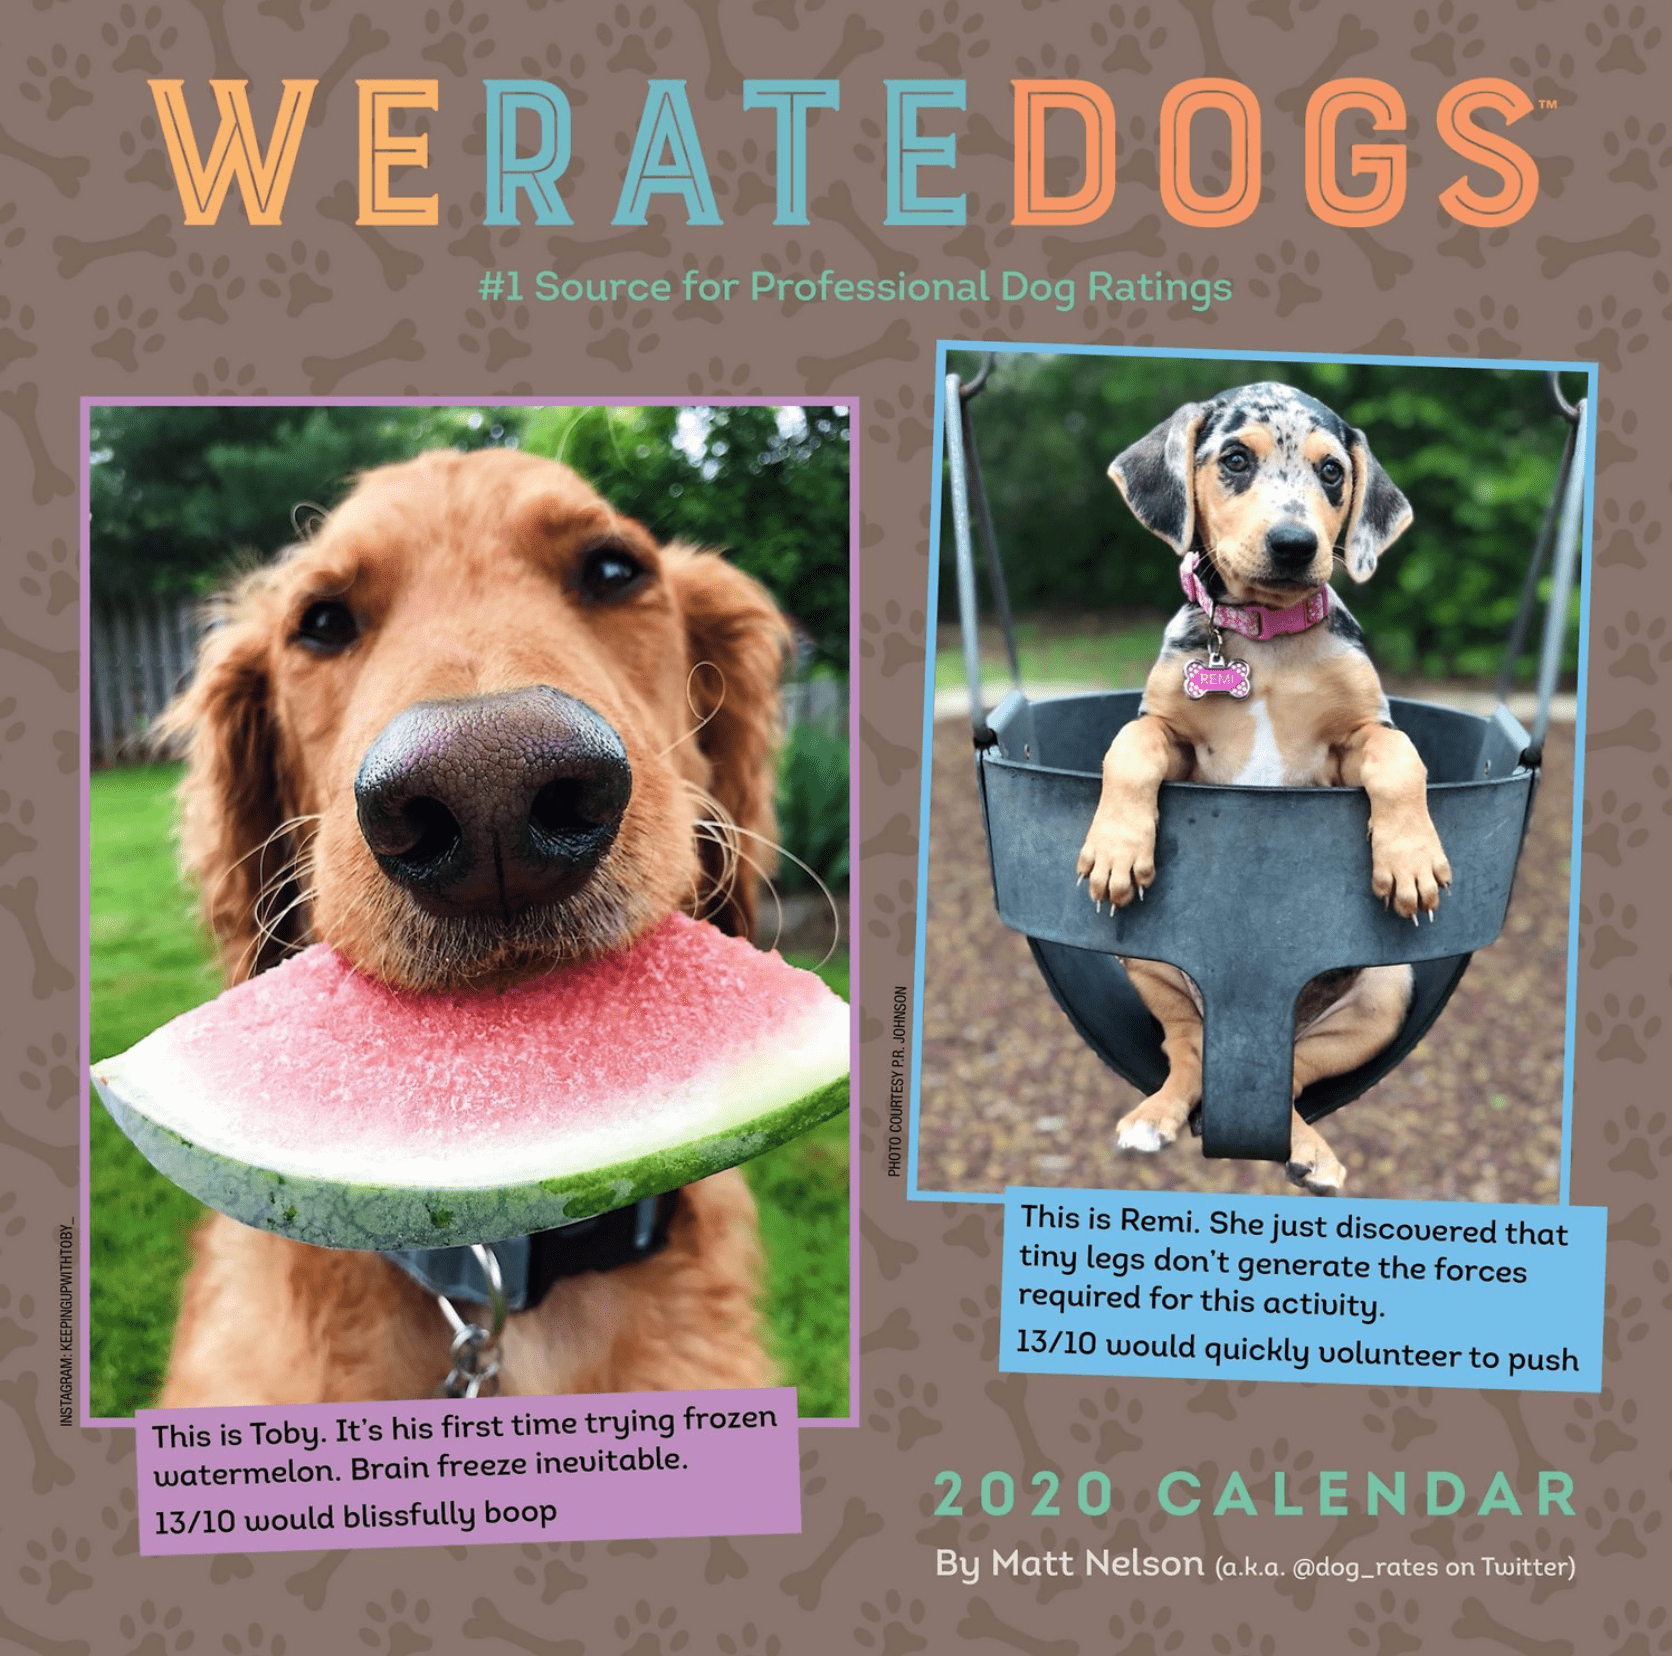 weratedogs we rate dogs calendar 2020